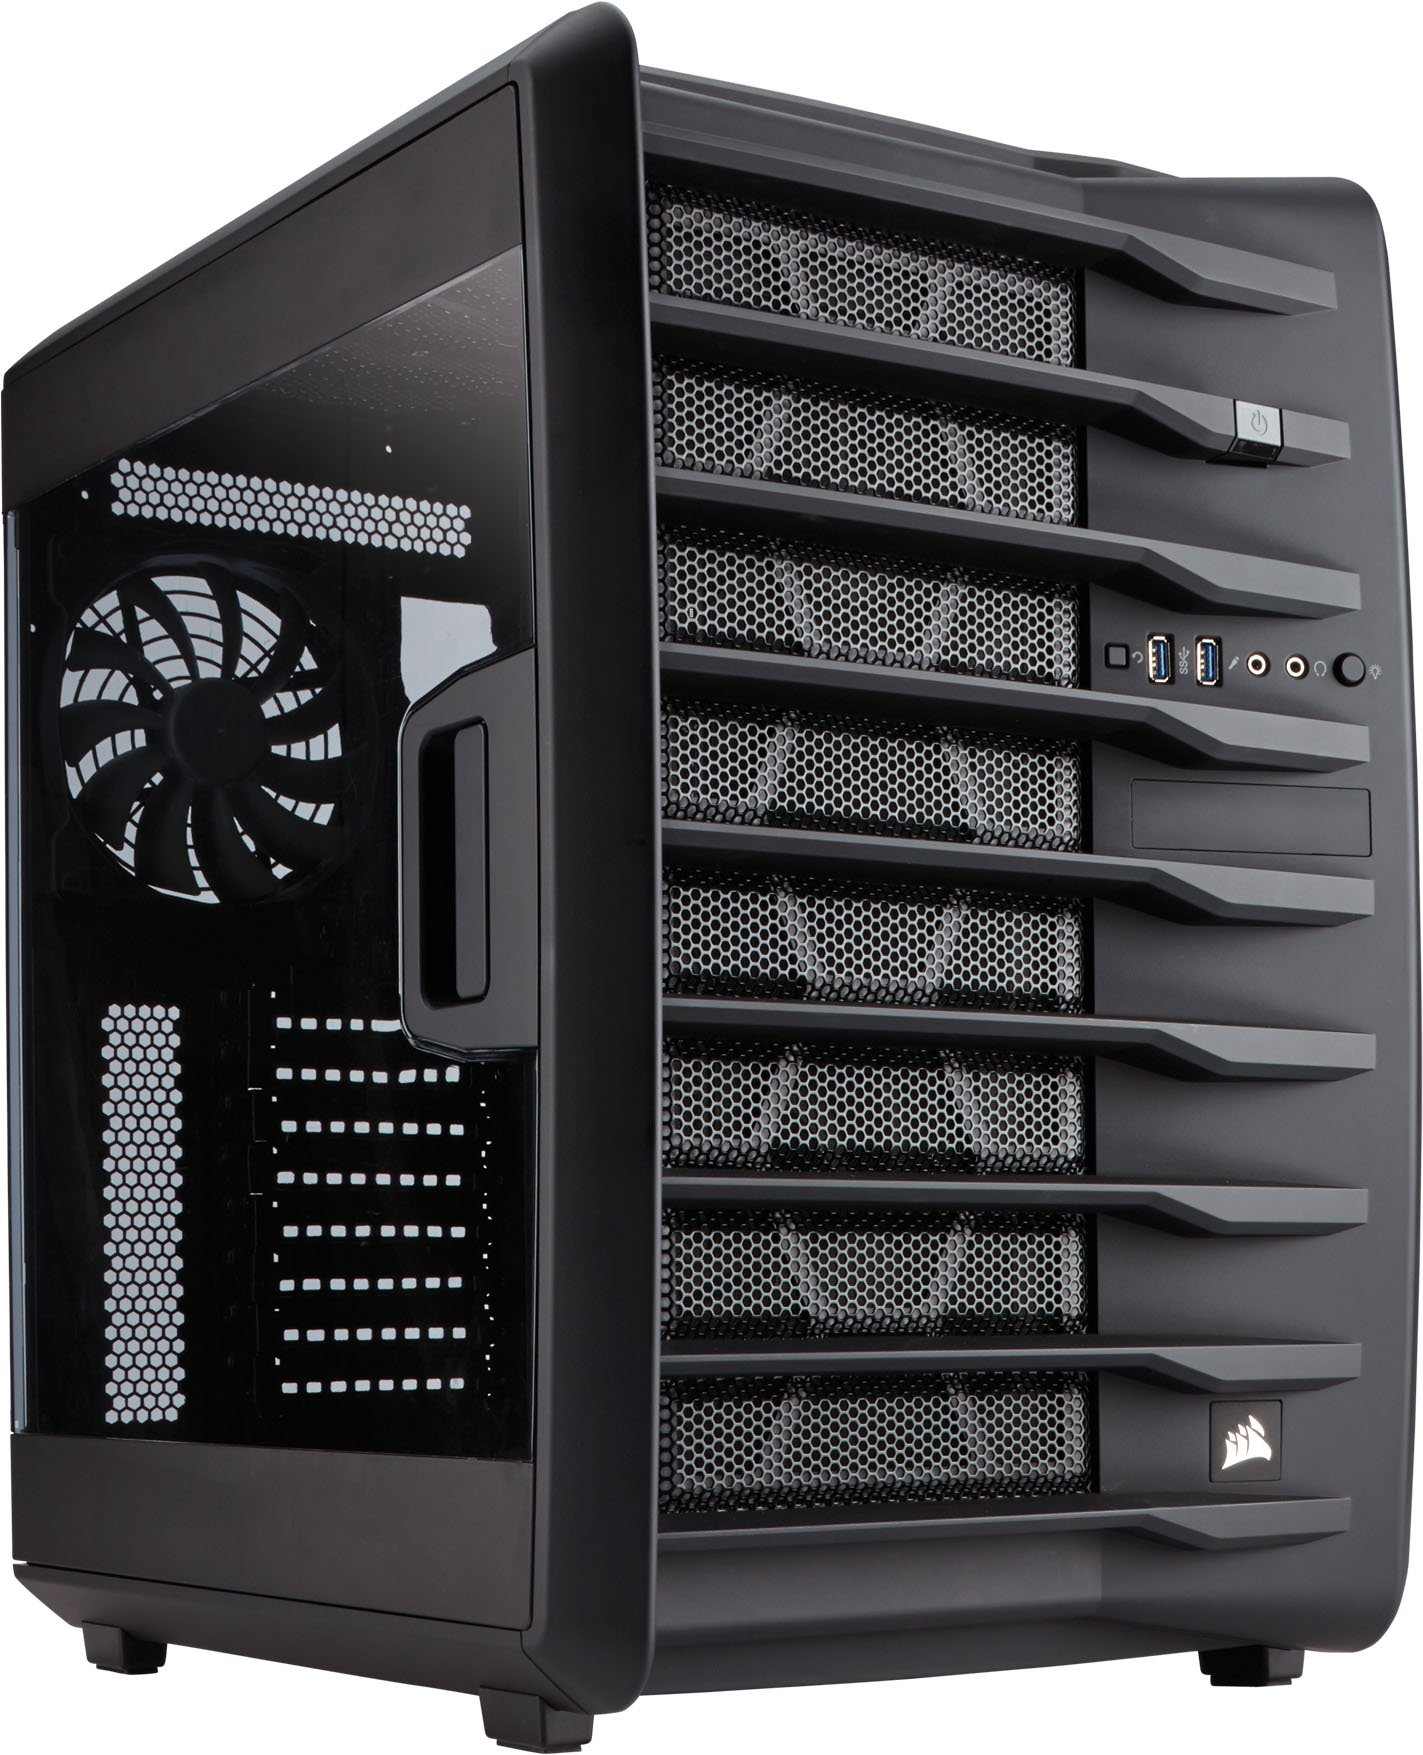 Corsair Carbide Series Air 740 - High Airflow ATX Cube Case (CC-9011096-WW) by Corsair